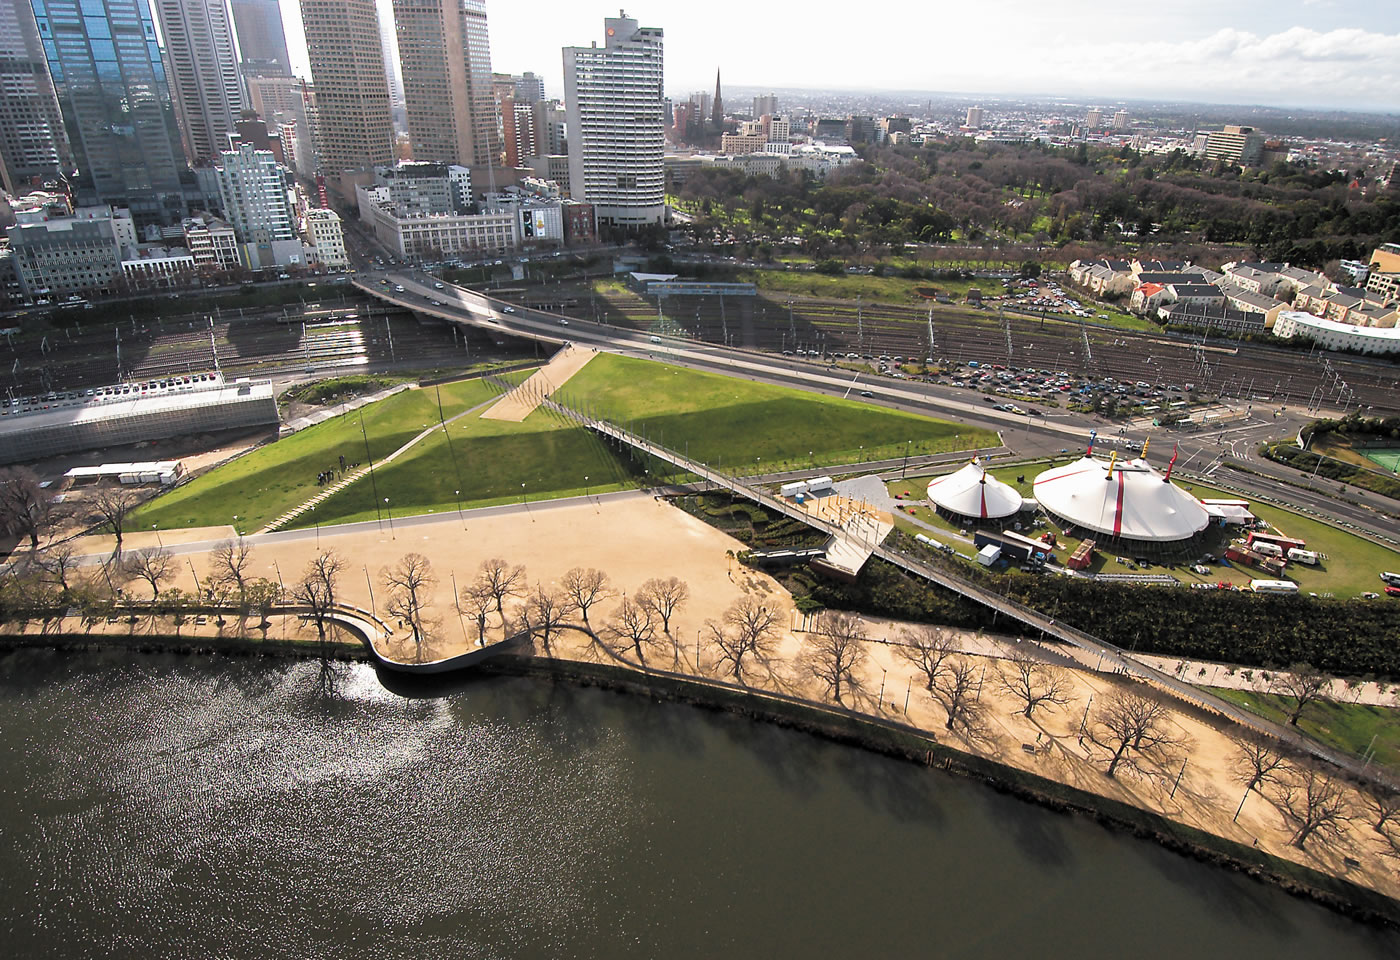 Birrarung Marr - the first new park near Melbourne's CBD in over a century.